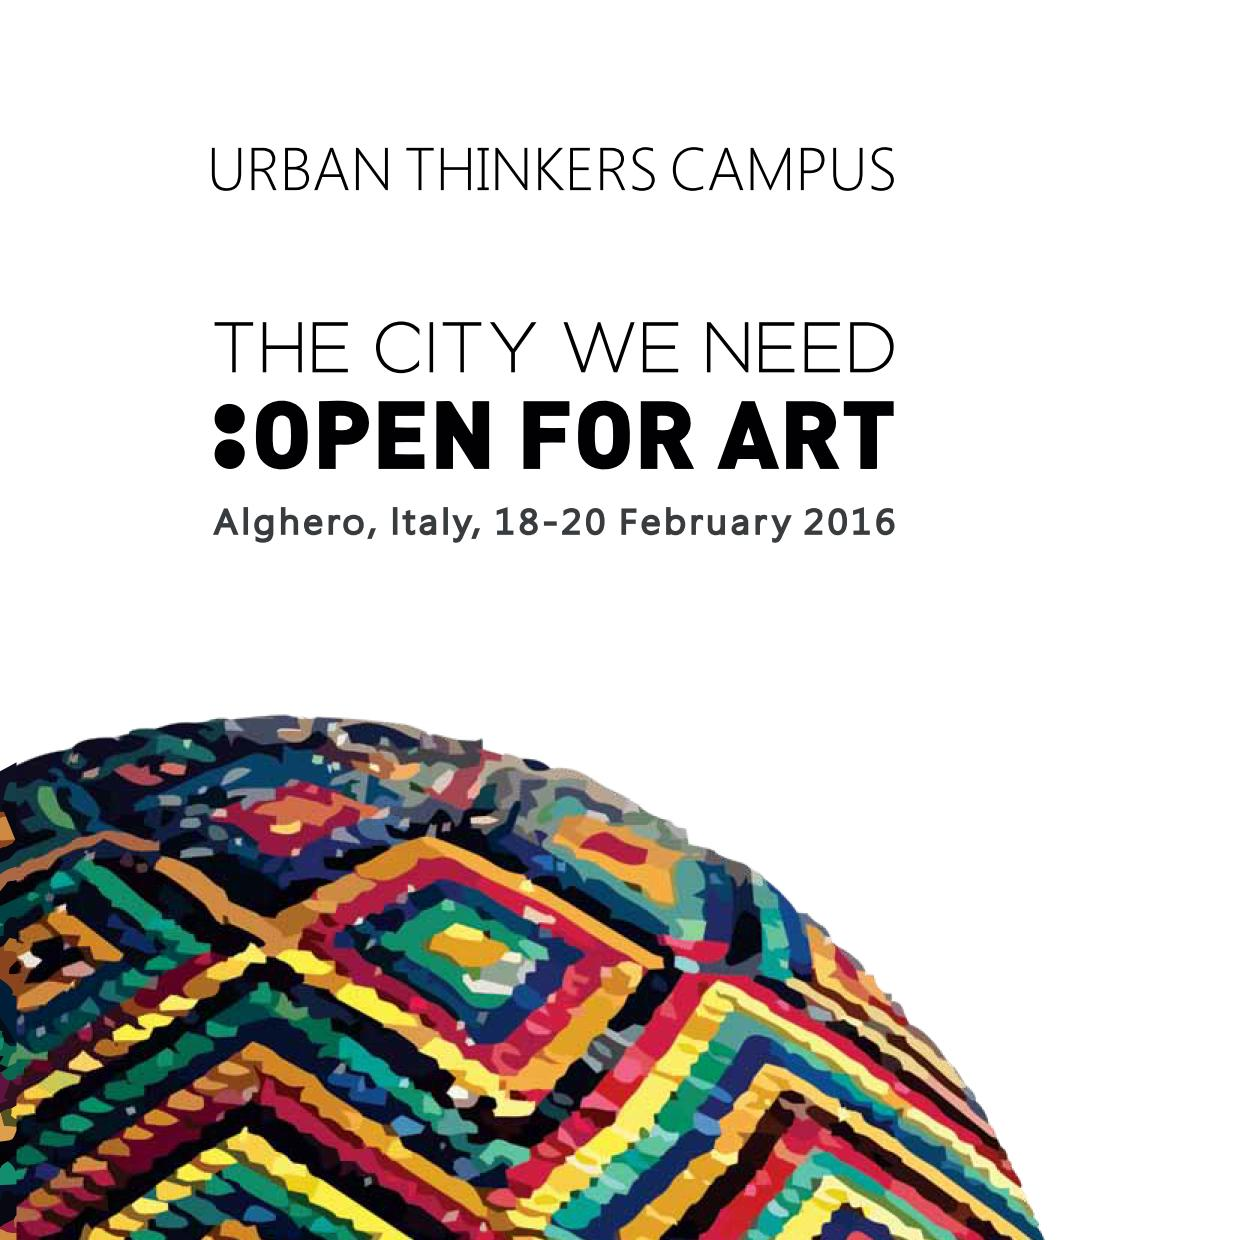 The City We Need: Open for Art